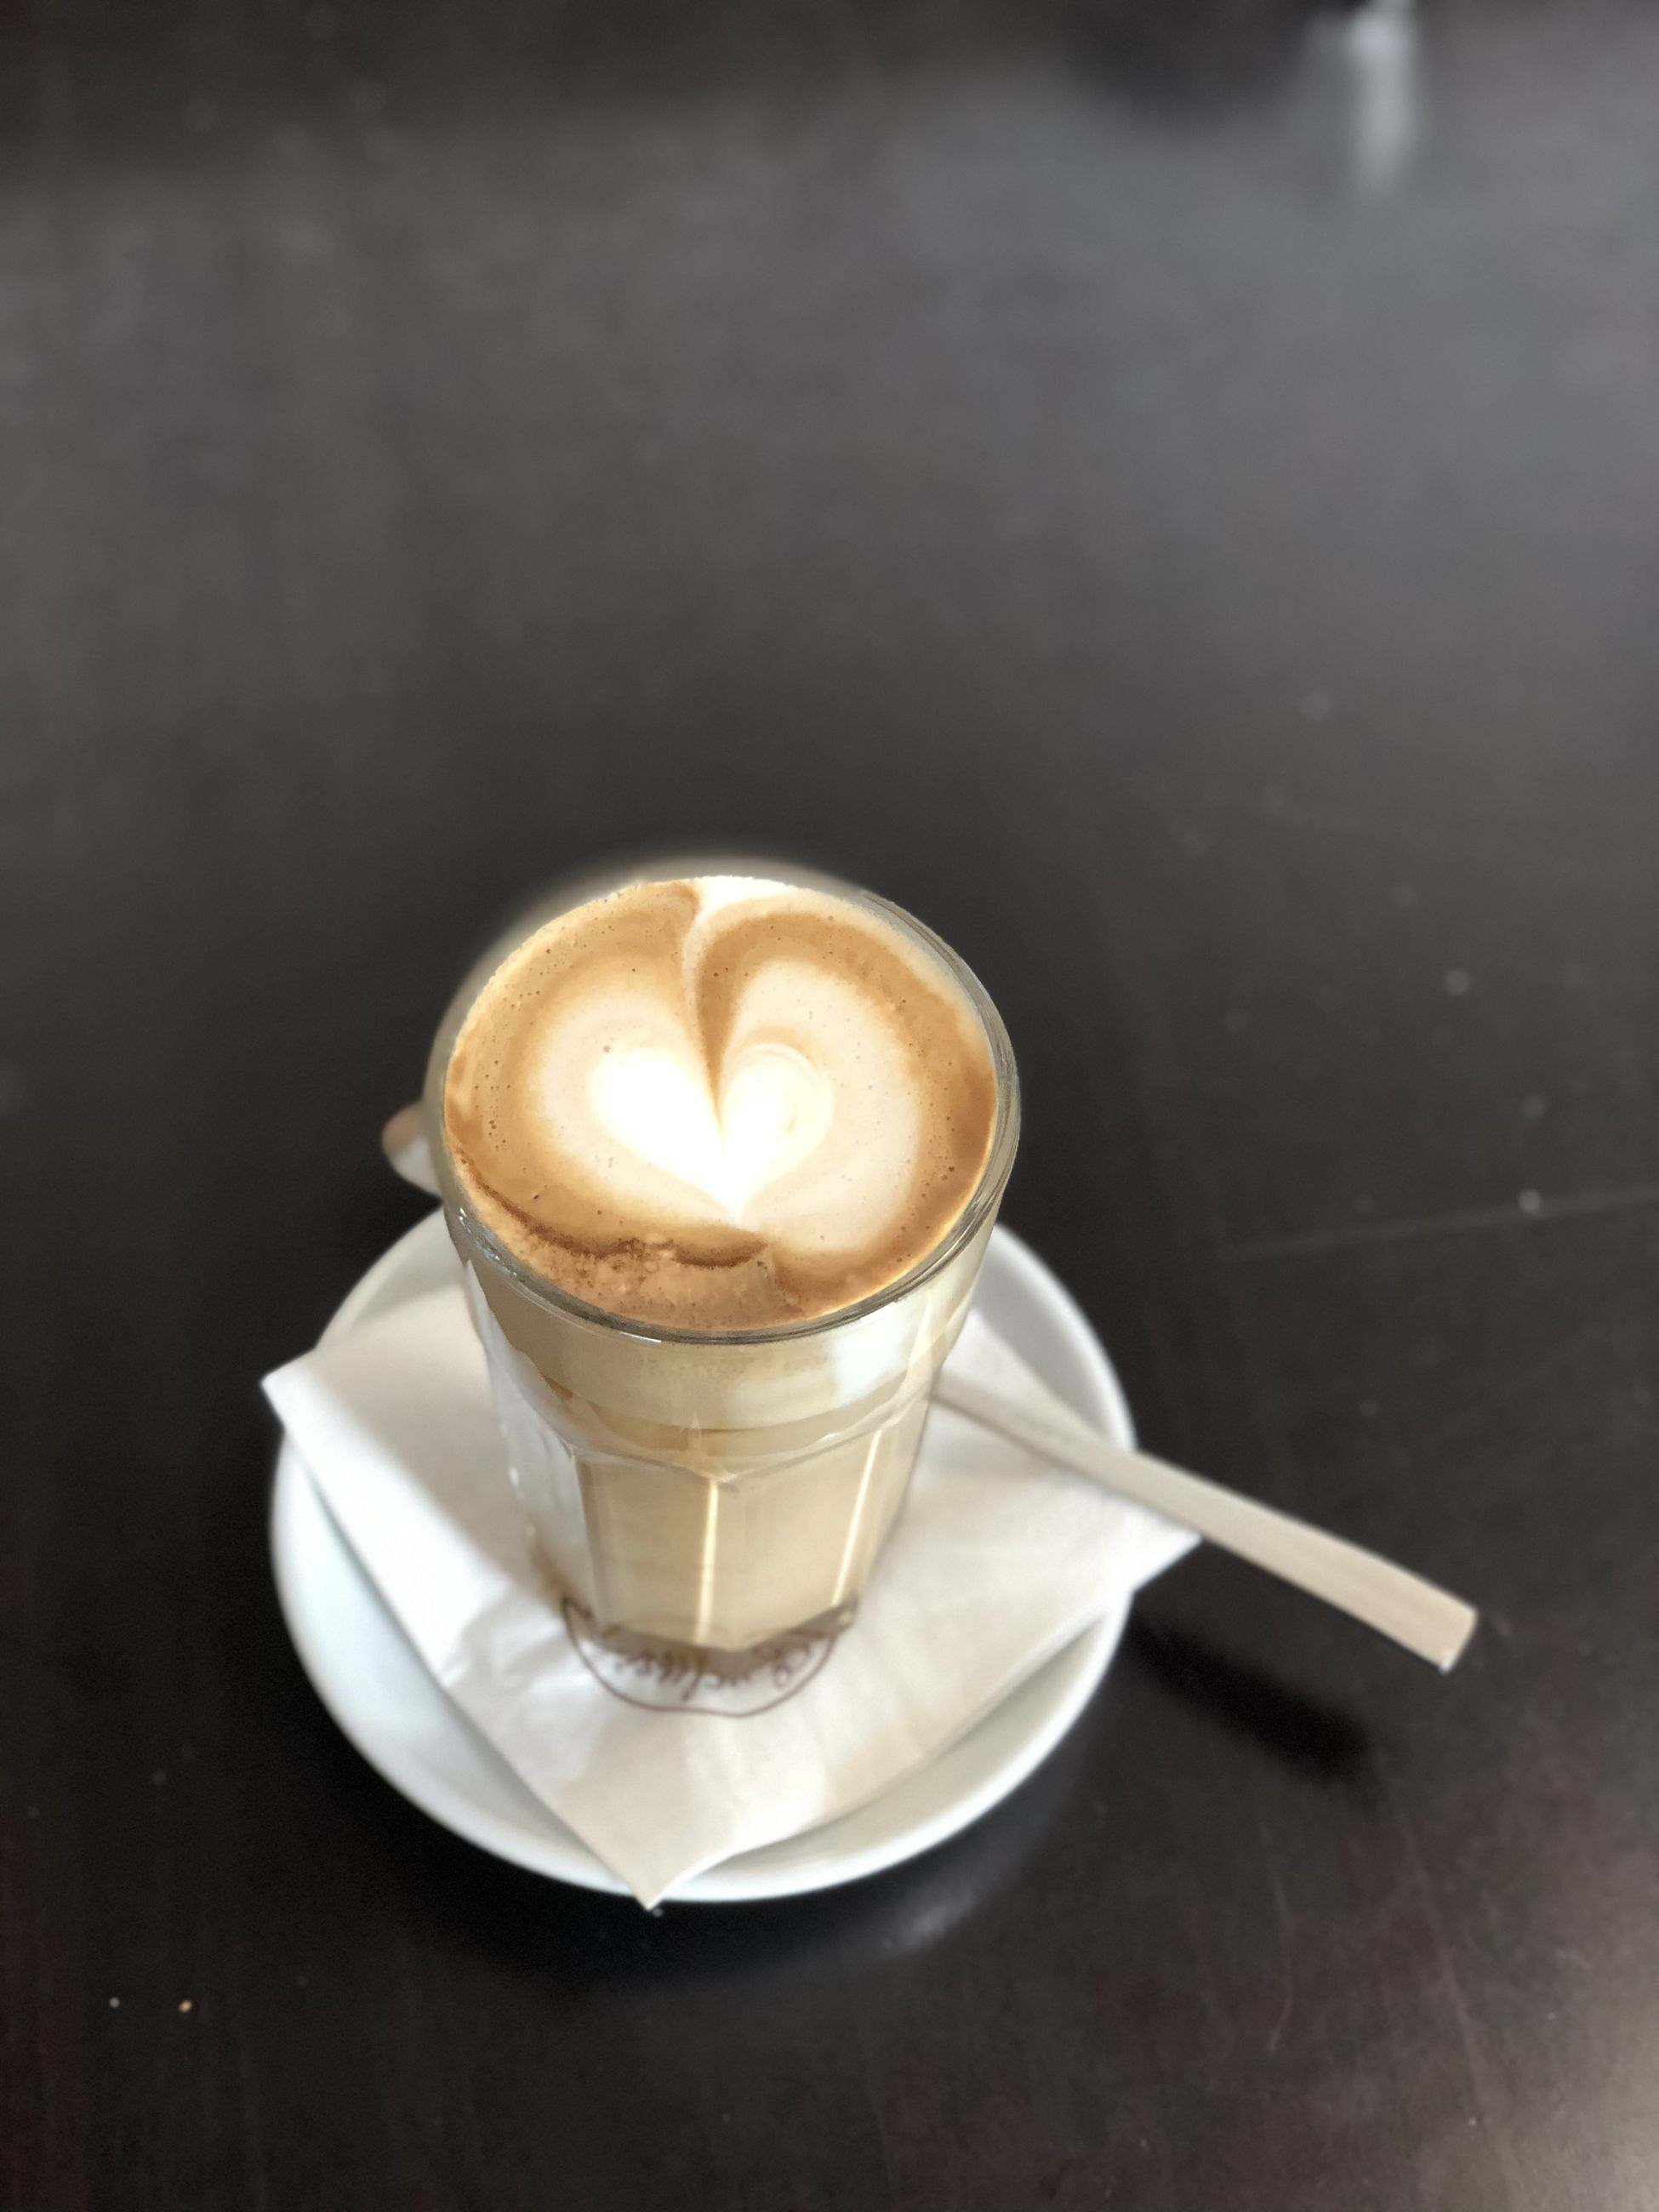 coffee, coffee - drink, refreshment, coffee cup, cup, mug, frothy drink, drink, food and drink, table, crockery, still life, spoon, eating utensil, hot drink, kitchen utensil, cappuccino, saucer, no people, indoors, latte, non-alcoholic beverage, teaspoon